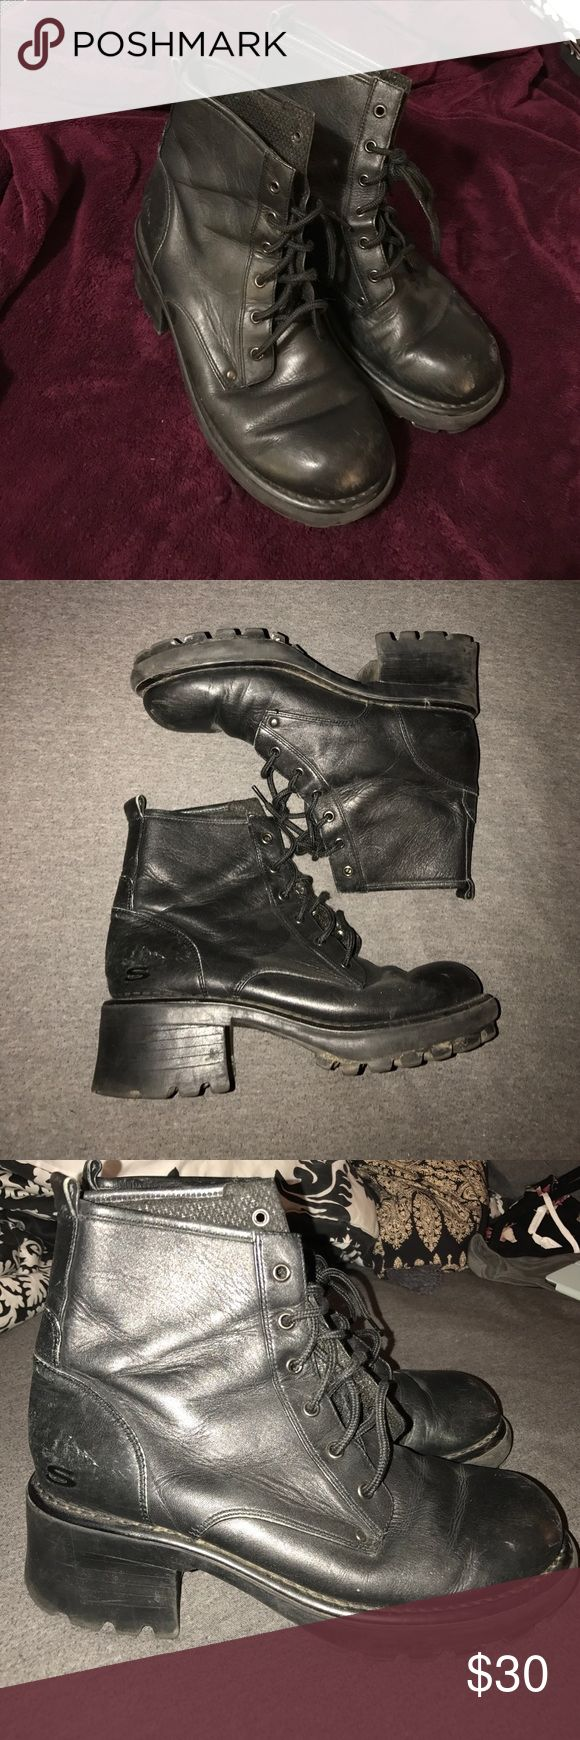 Vintage platform sketchers boots Super cute vintage platform boots! I would always gets lots of questions about these when I wore them and everyone would always be shocked when I said they were sketchers! Lol 💕 Shoes Combat & Moto Boots